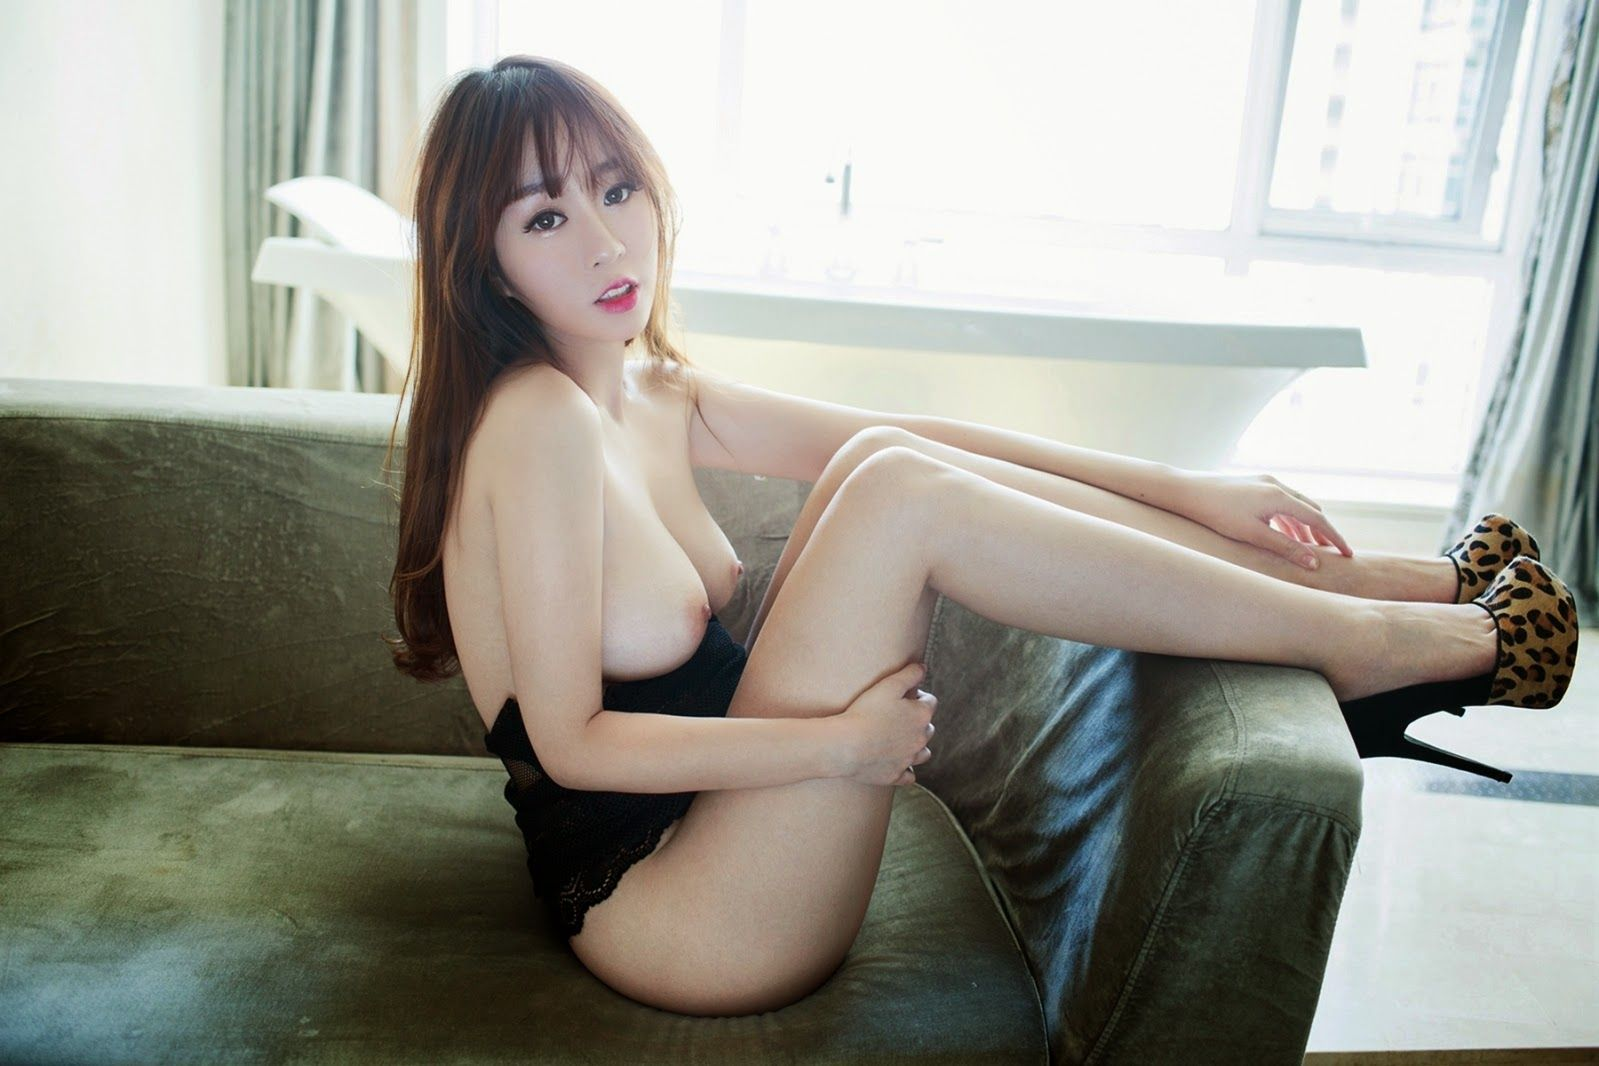 Nude chinese girls with big boobs, nude indian model big hips